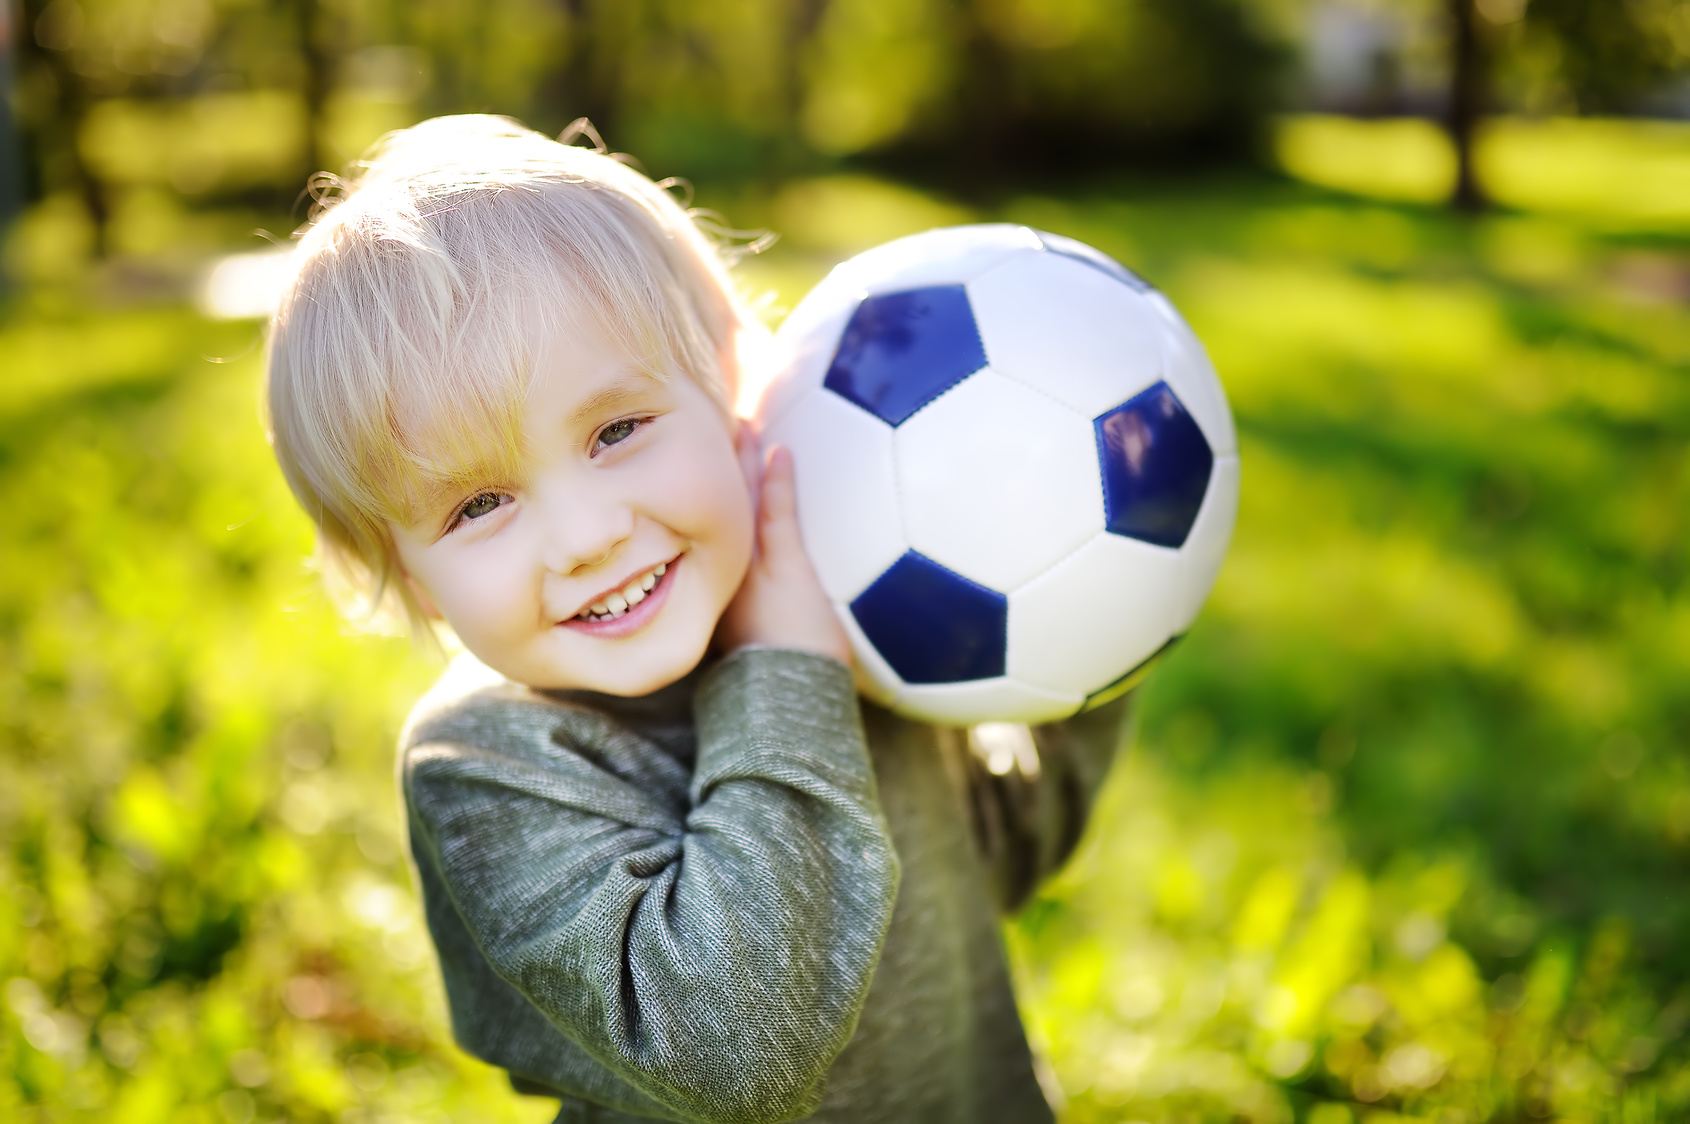 Little boy having fun playing a soccer game on sunny summer day. Active outdoors game for toddler